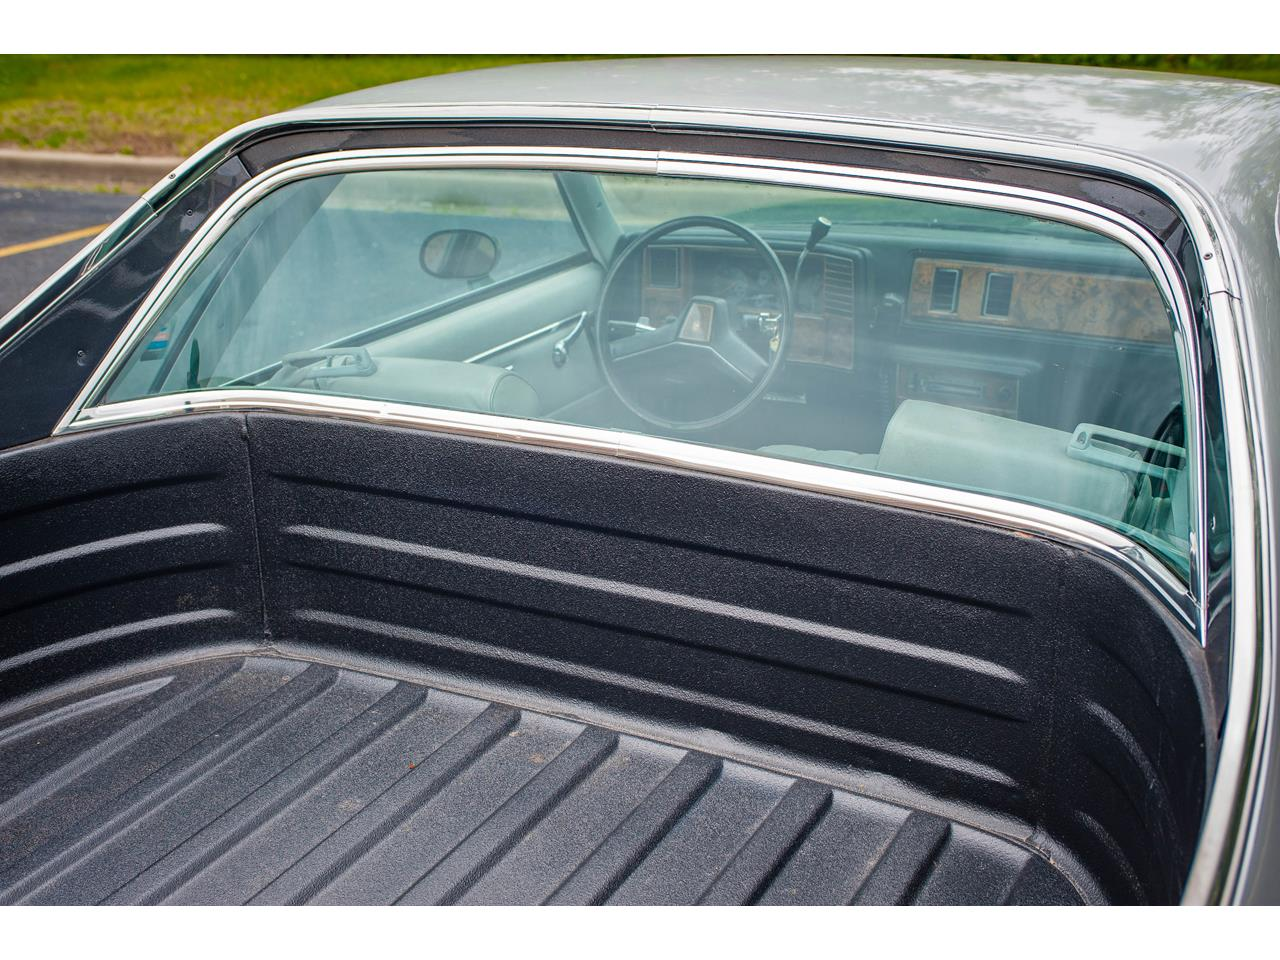 Large Picture of 1982 Chevrolet El Camino located in O'Fallon Illinois - $13,000.00 Offered by Gateway Classic Cars - St. Louis - QB9A